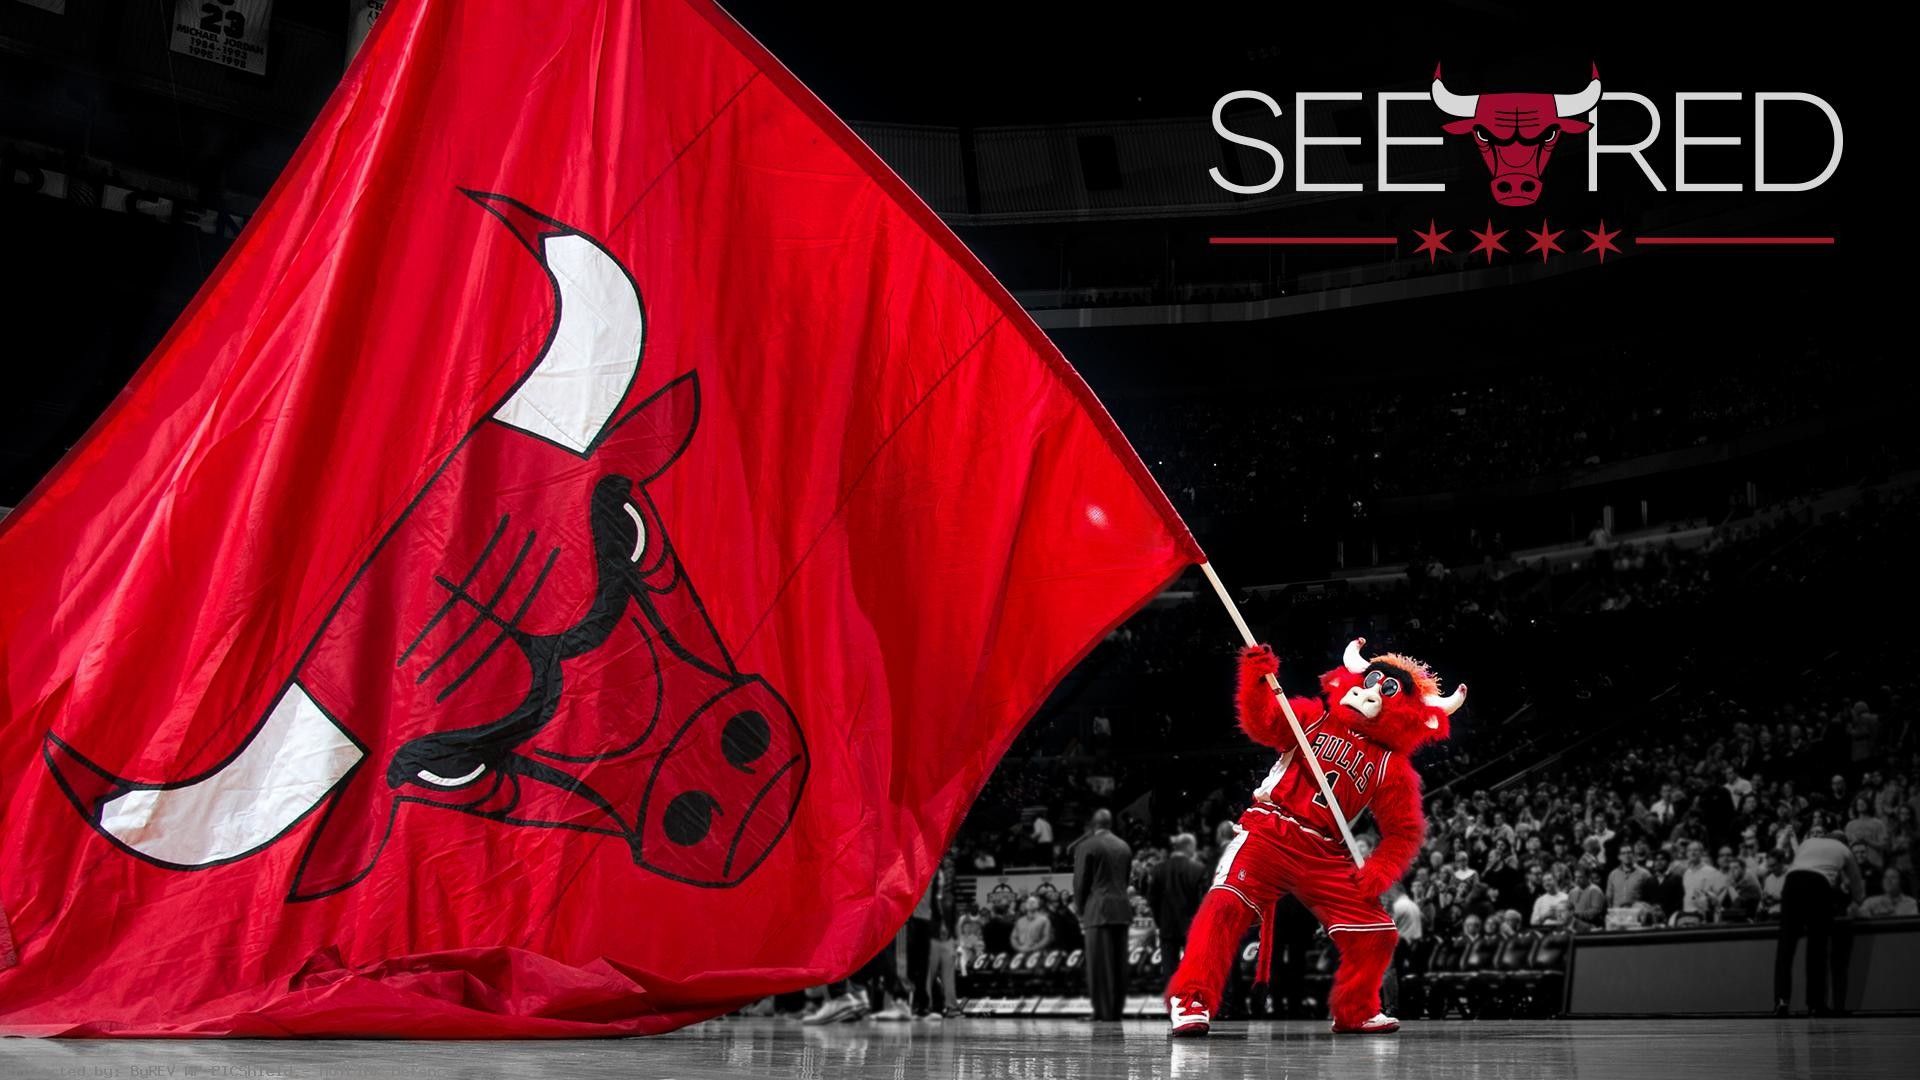 SEE-RED-Chicago-Bulls-Playoffs-wallpaper-wp60011662